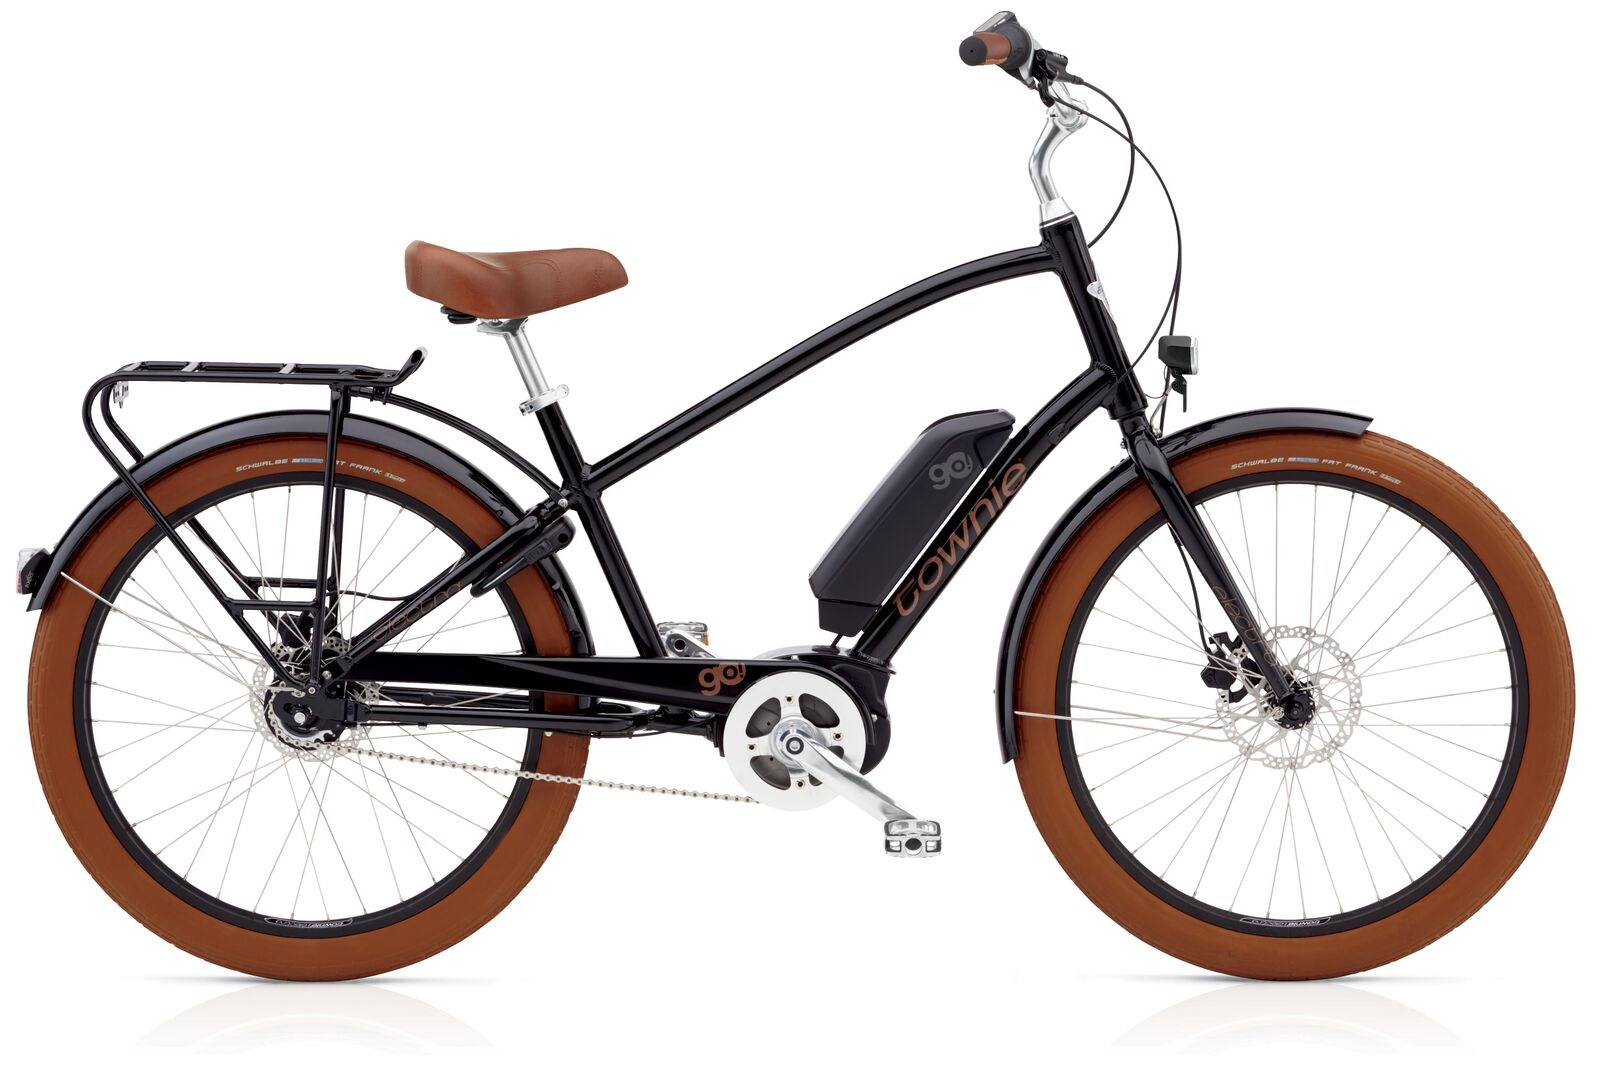 Electra Townie GO! 8i Electric Bike